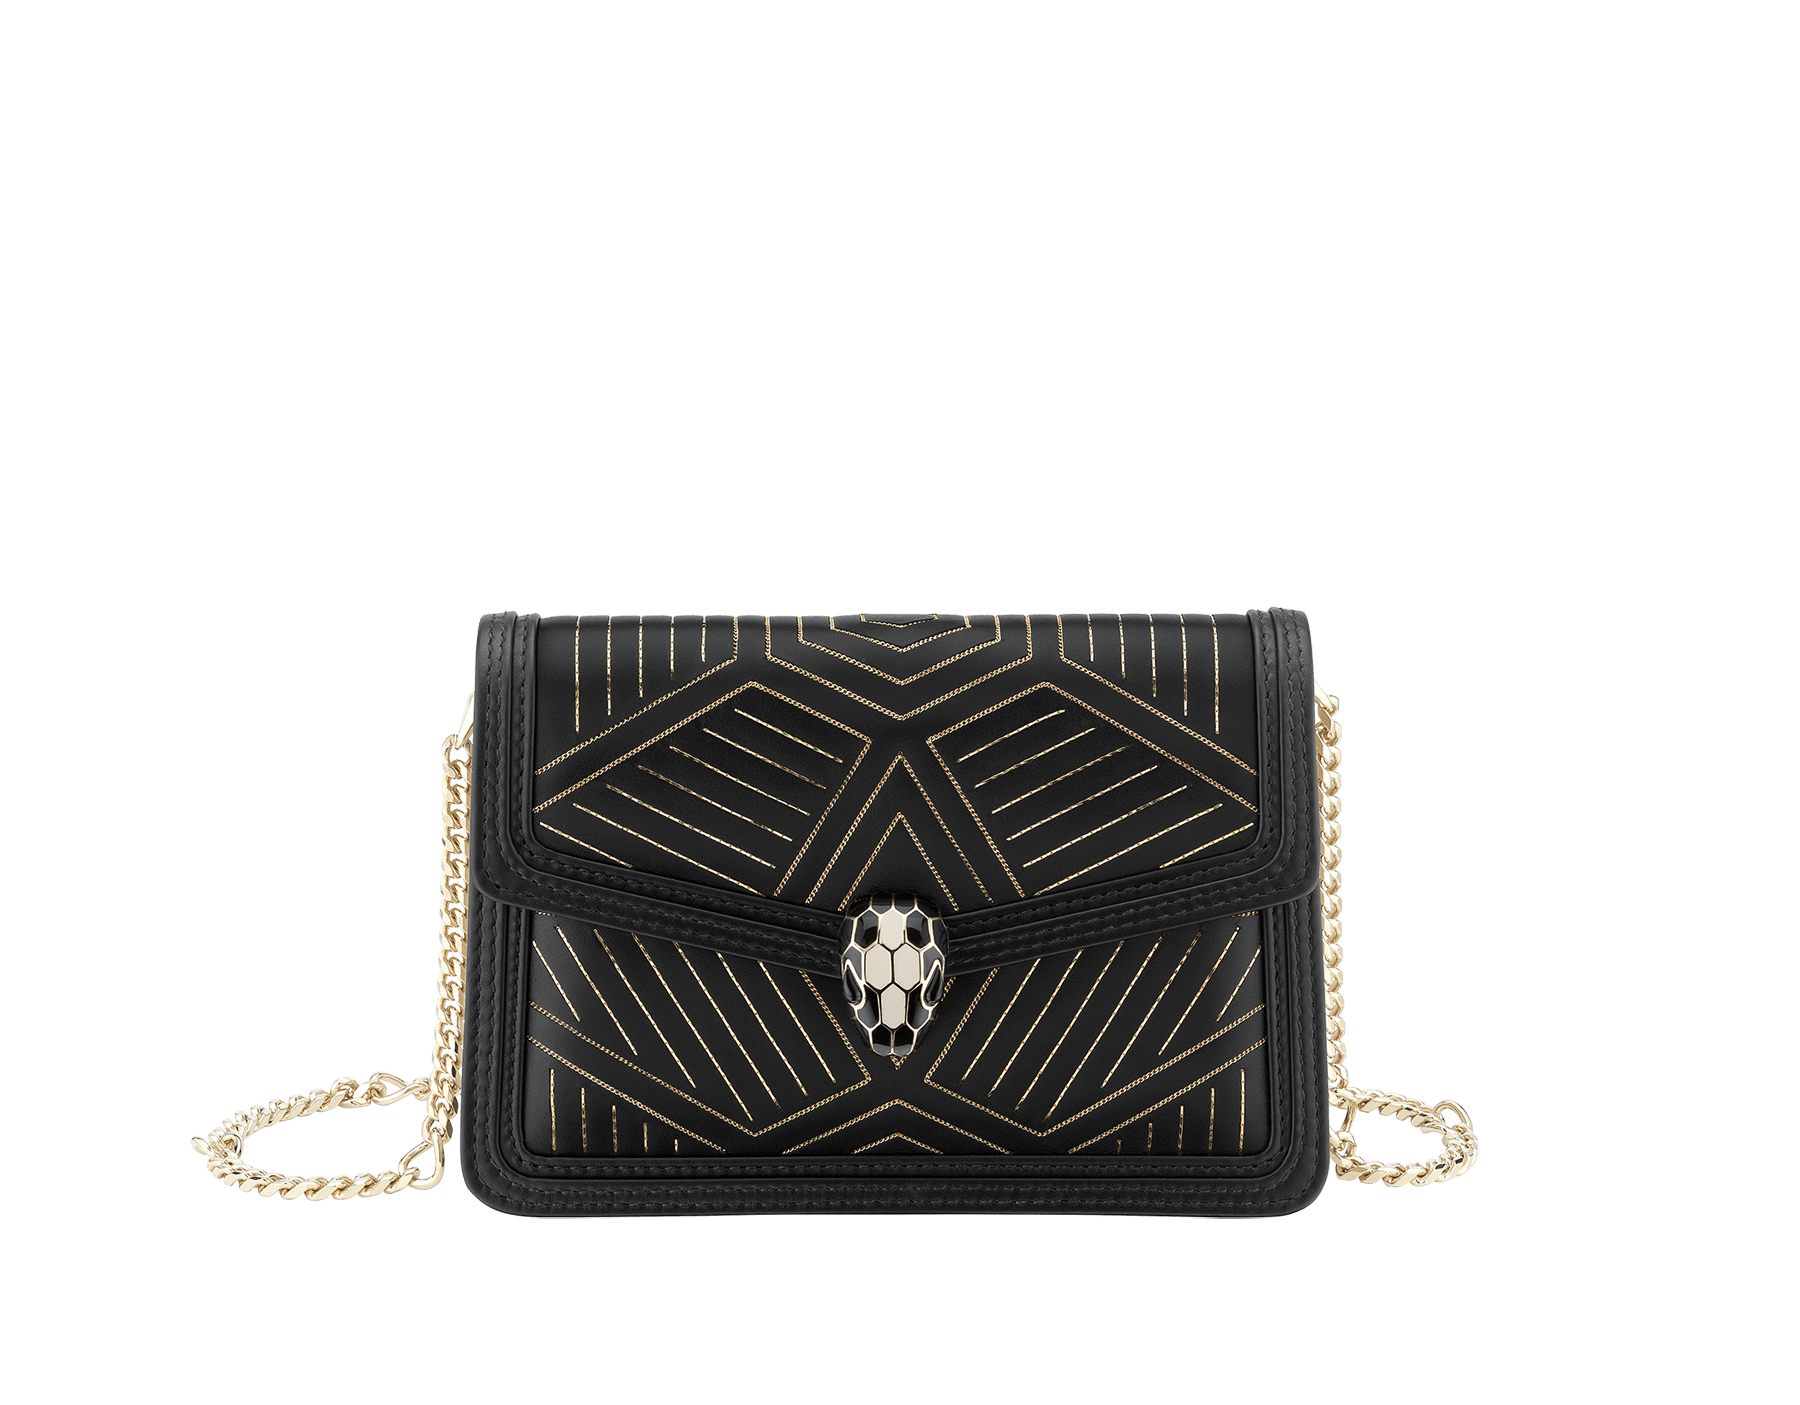 """Serpenti Diamond Blast"" shoulder bag in white agate calf leather, featuring a Whispy Chain motif in light gold finishing. Iconic snakehead closure in light gold plated brass enriched with black and white agate enamel and black onyx eyes. 987-WC image 1"